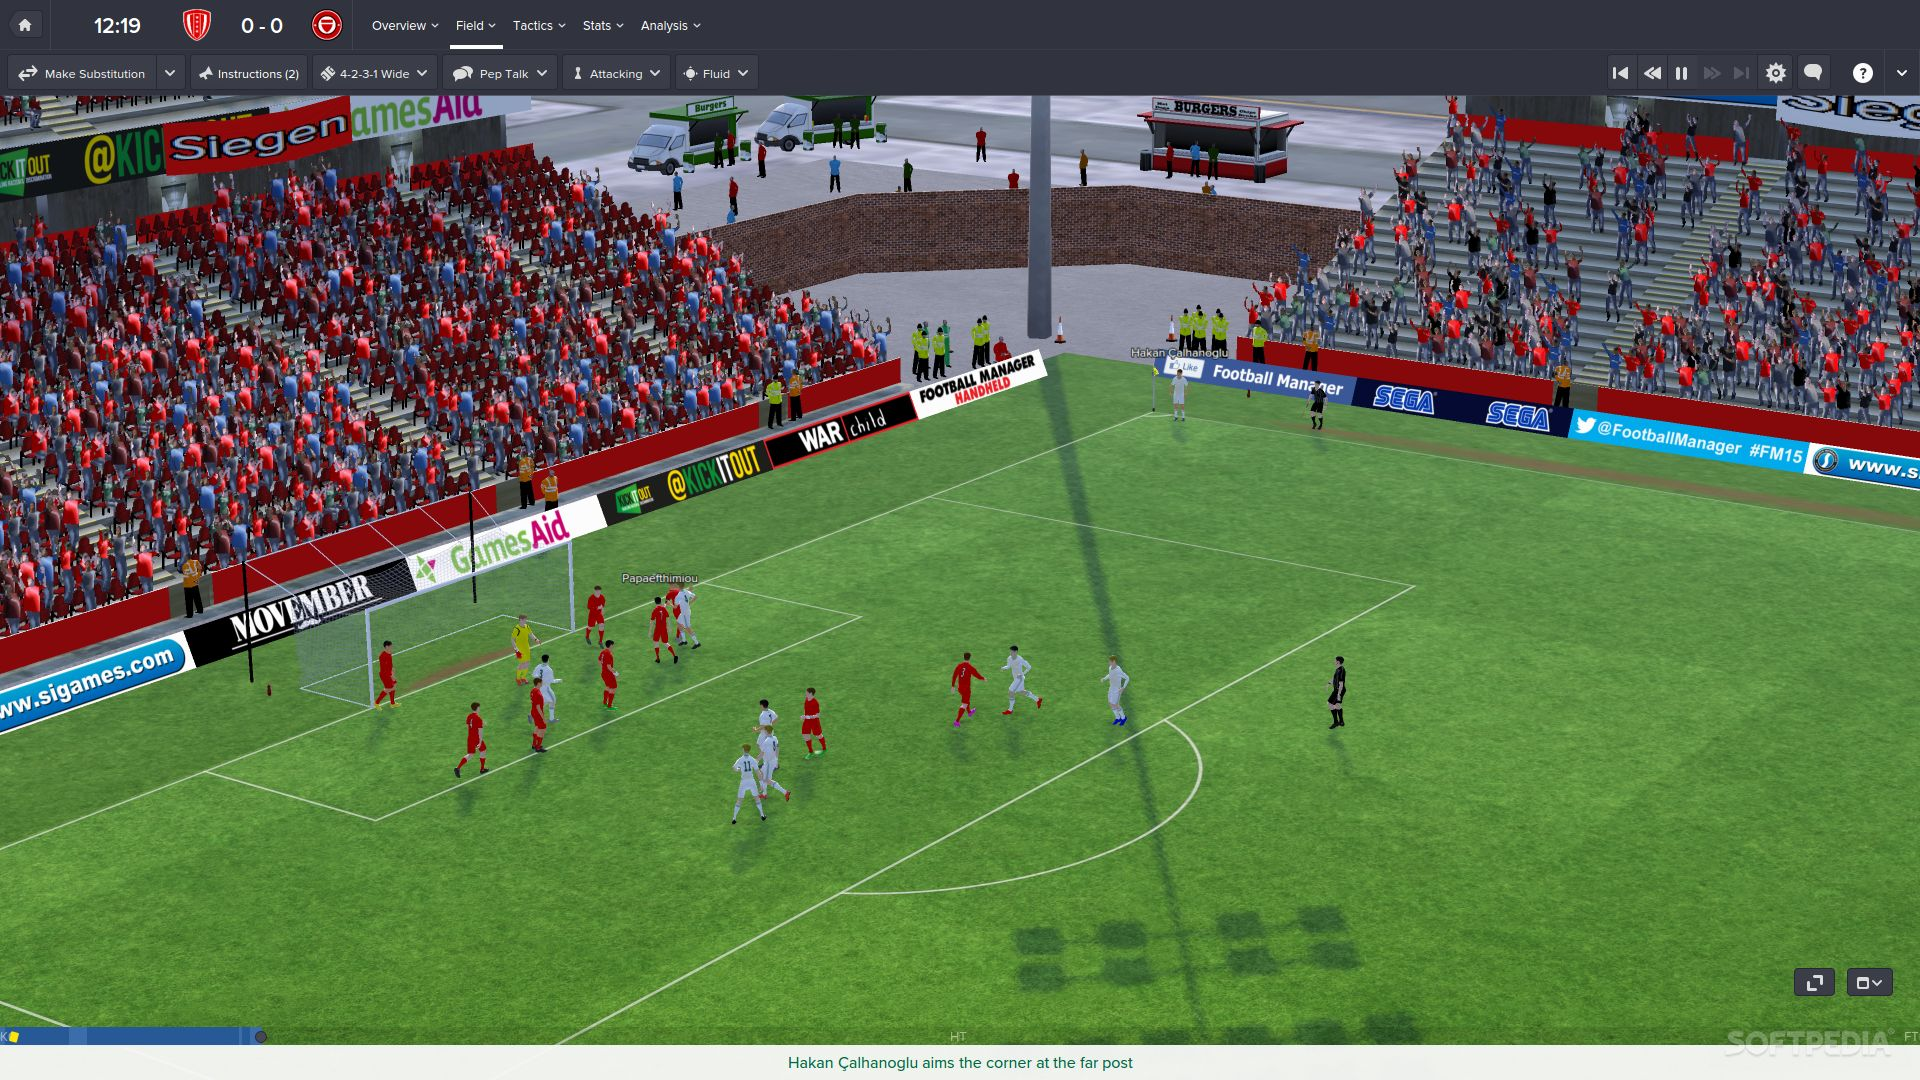 Football-Manager-2015-Review-PC-465591-1